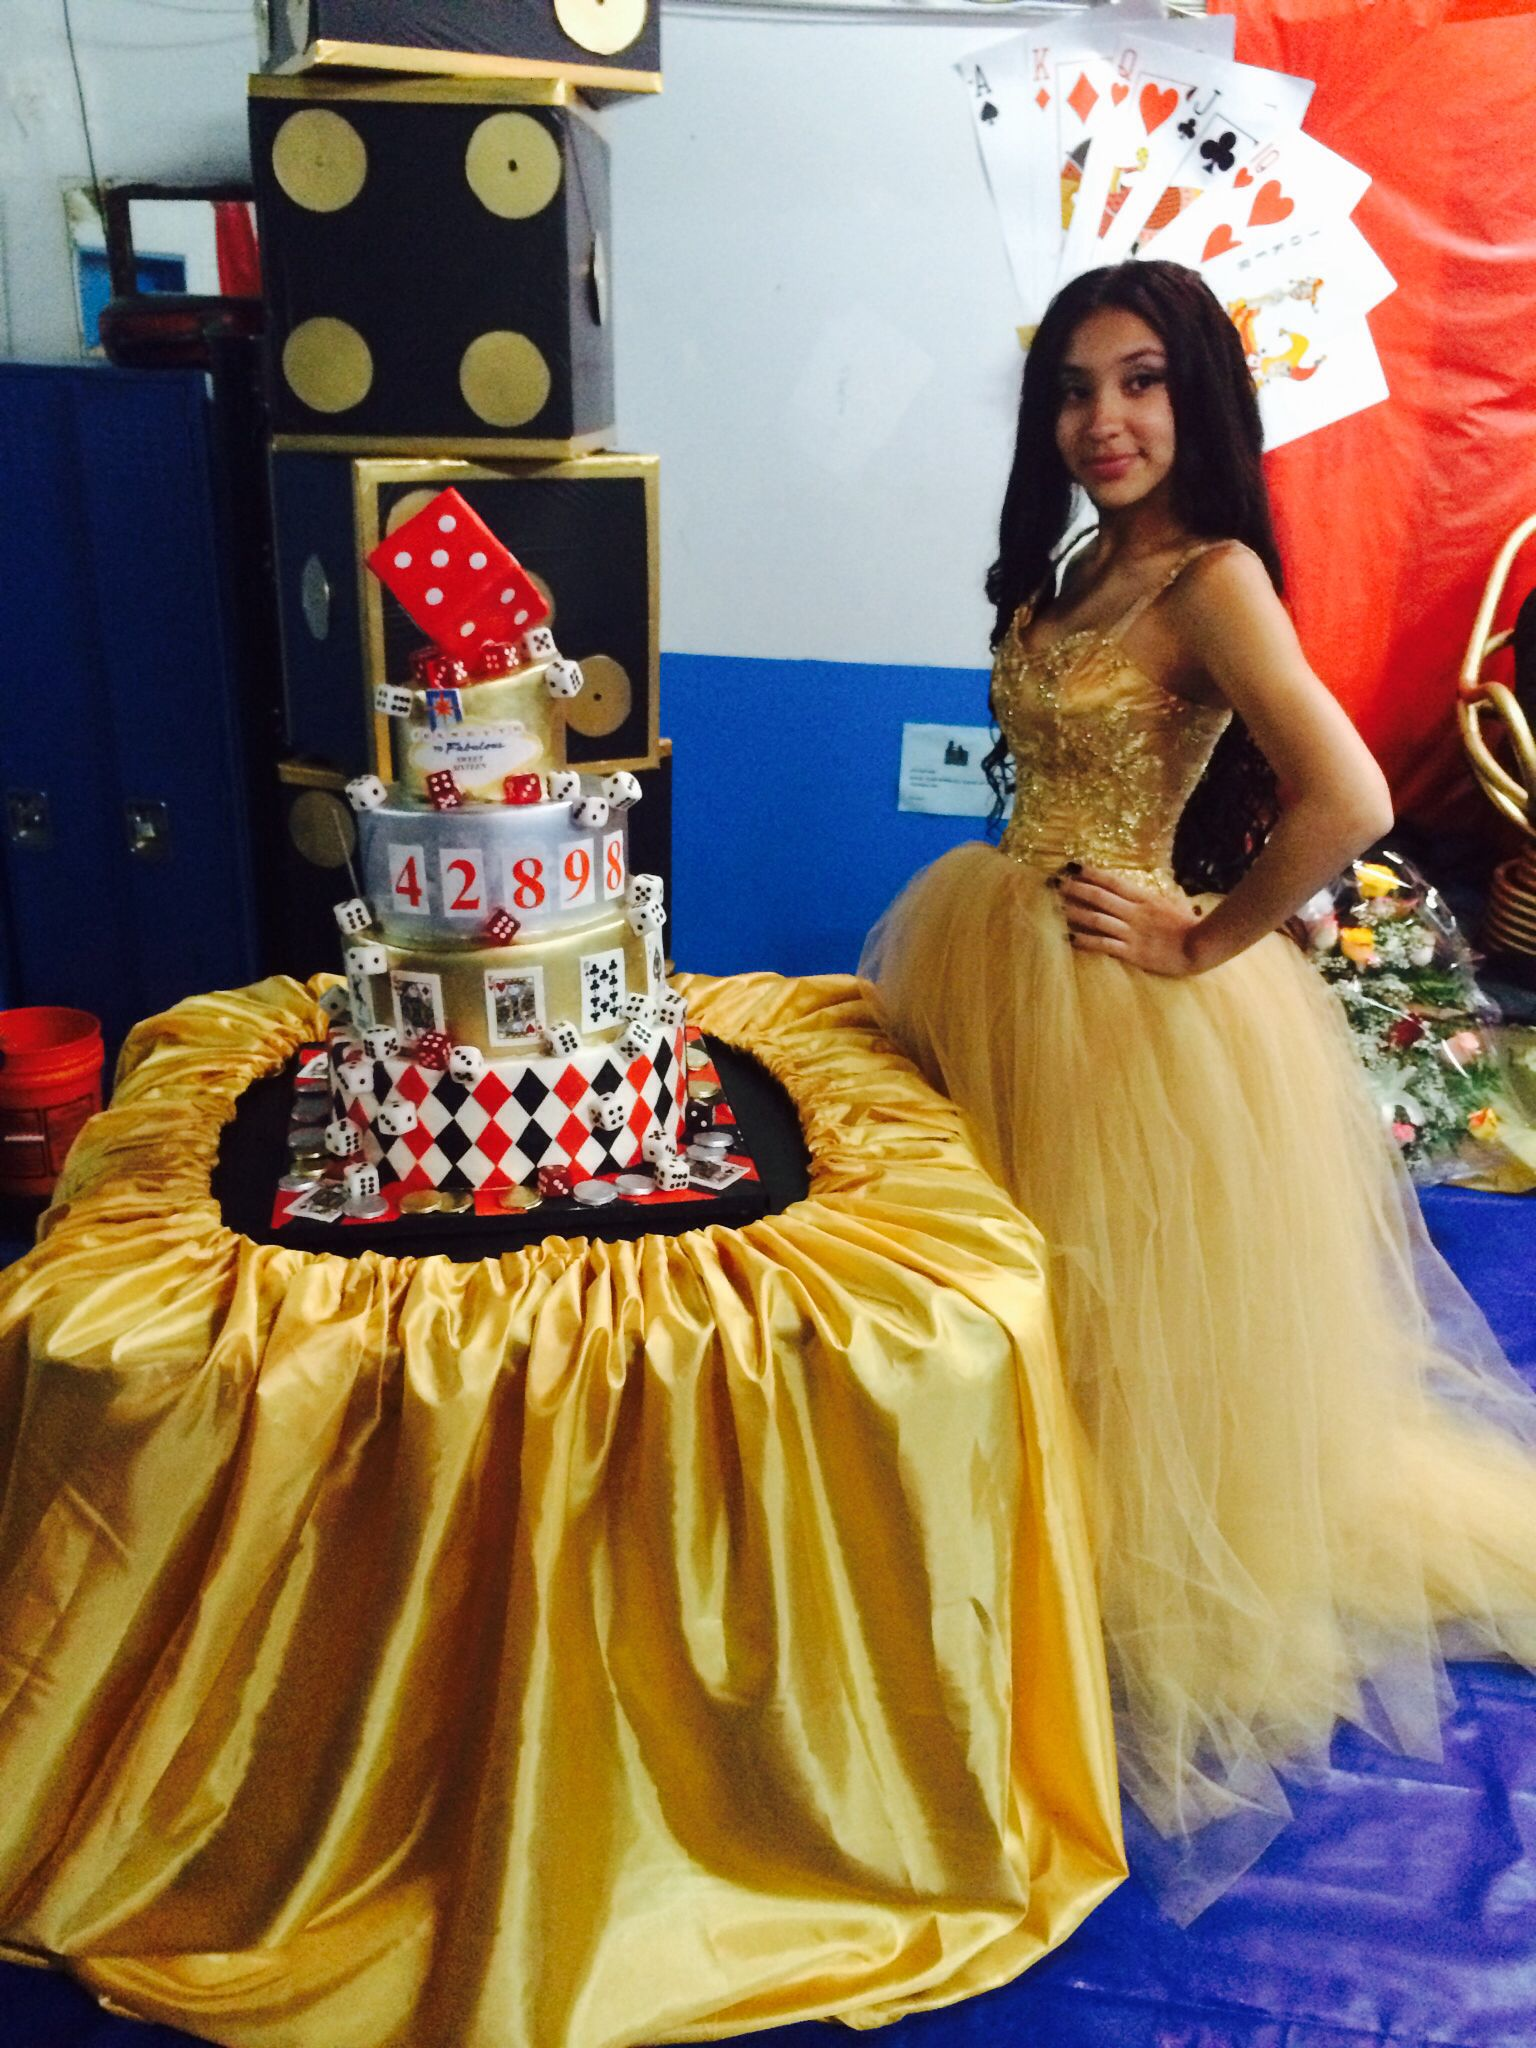 Casino sweet 16 occasion cakes sweet 16 sweet